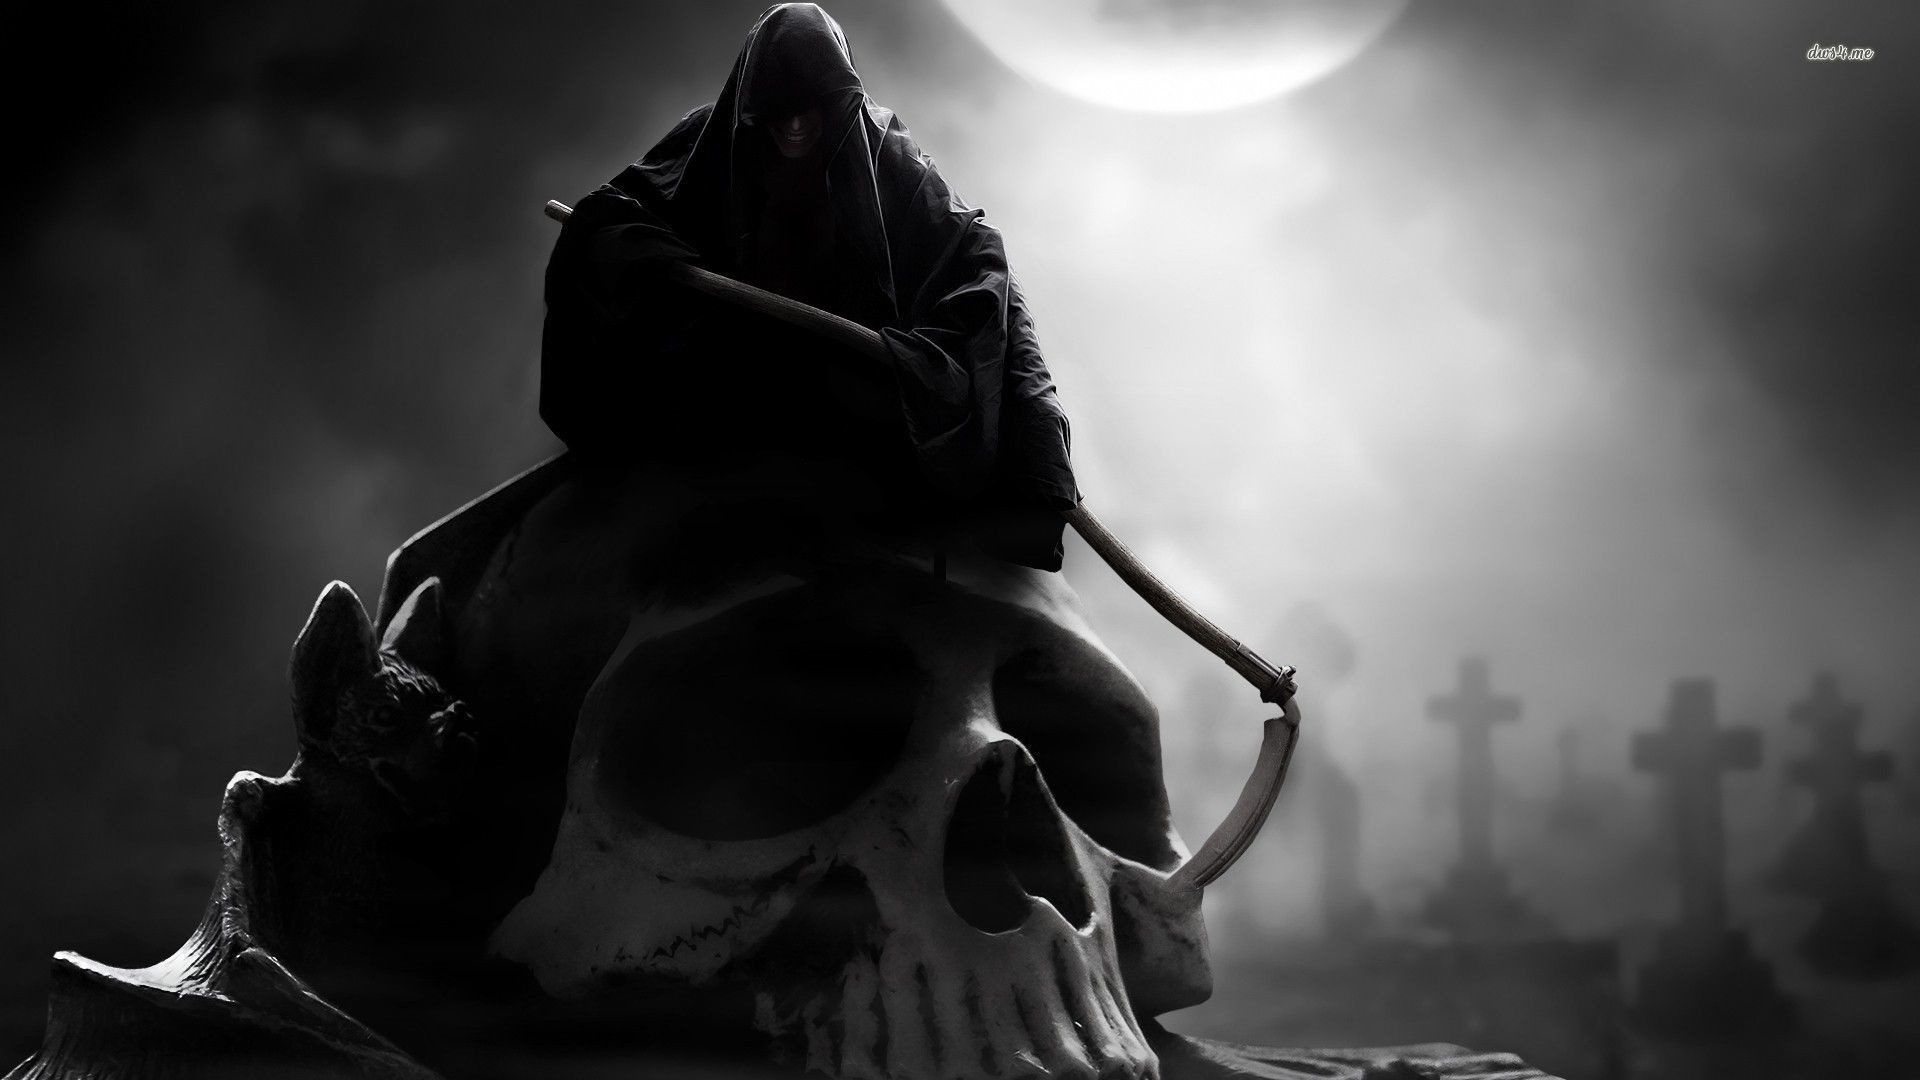 Res: 1920x1080, Grim Reaper Wallpapers Desktop Background For Desktop Wallpaper 1920 x 1080  px 623.08 KB cool pictures